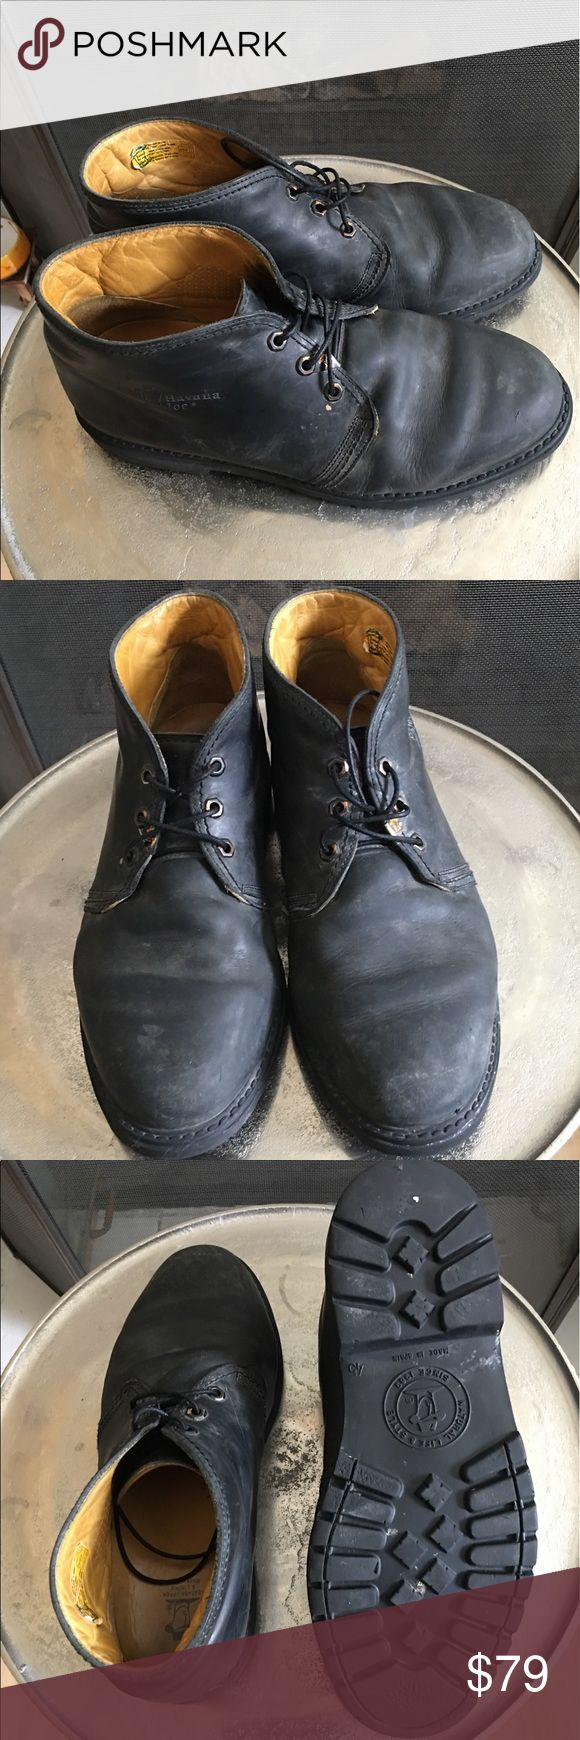 Men chukka boot Casual black men's chukka boot with waffle sole super comfortable made in Spain great construction they may be re sole - Havana Joe havana joe Shoes Chukka Boots